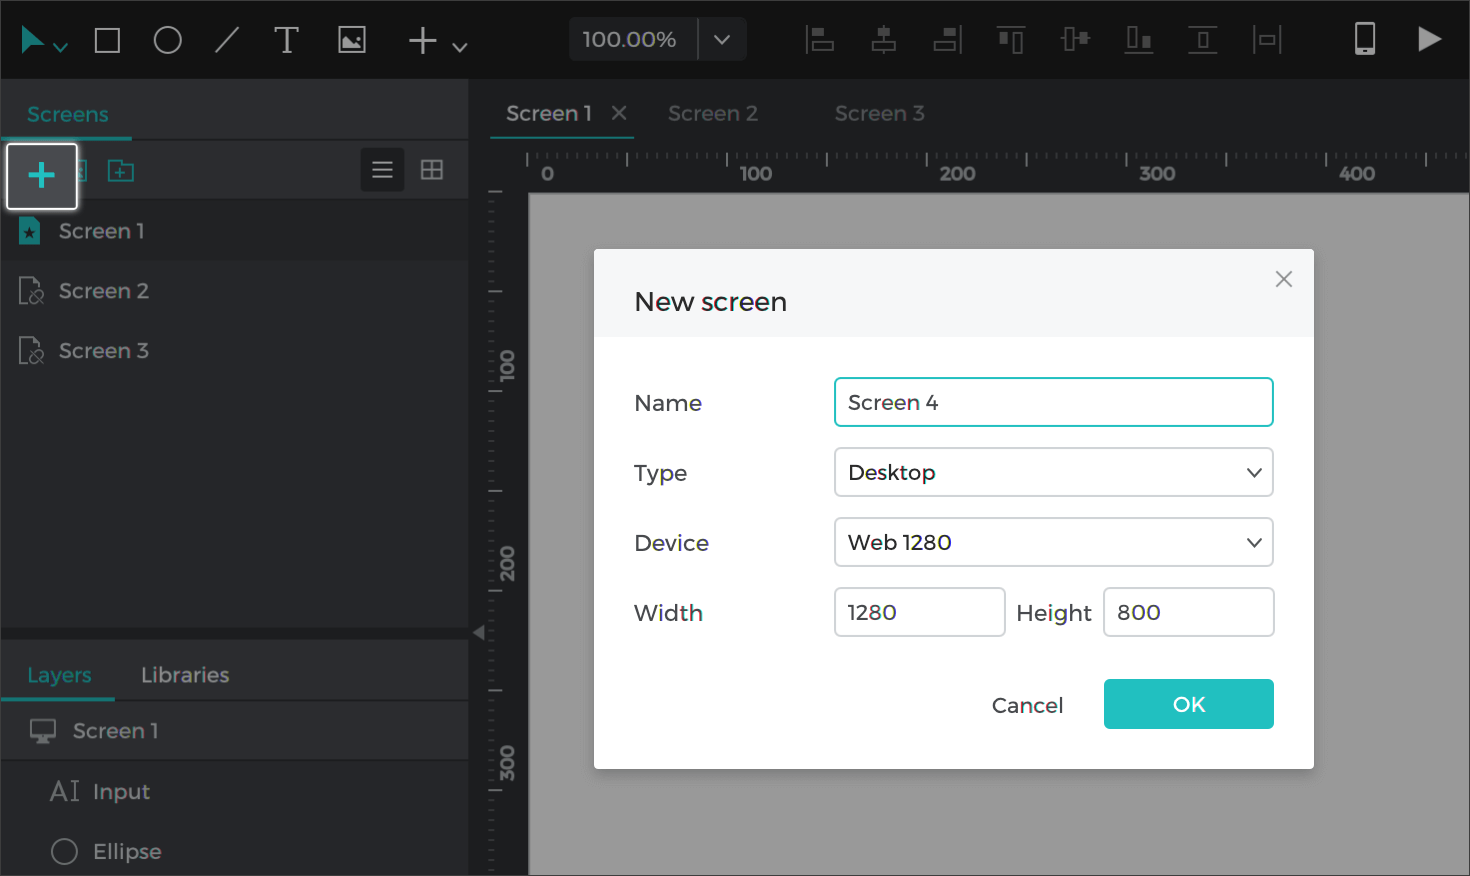 Create a new screen by clicking the + button